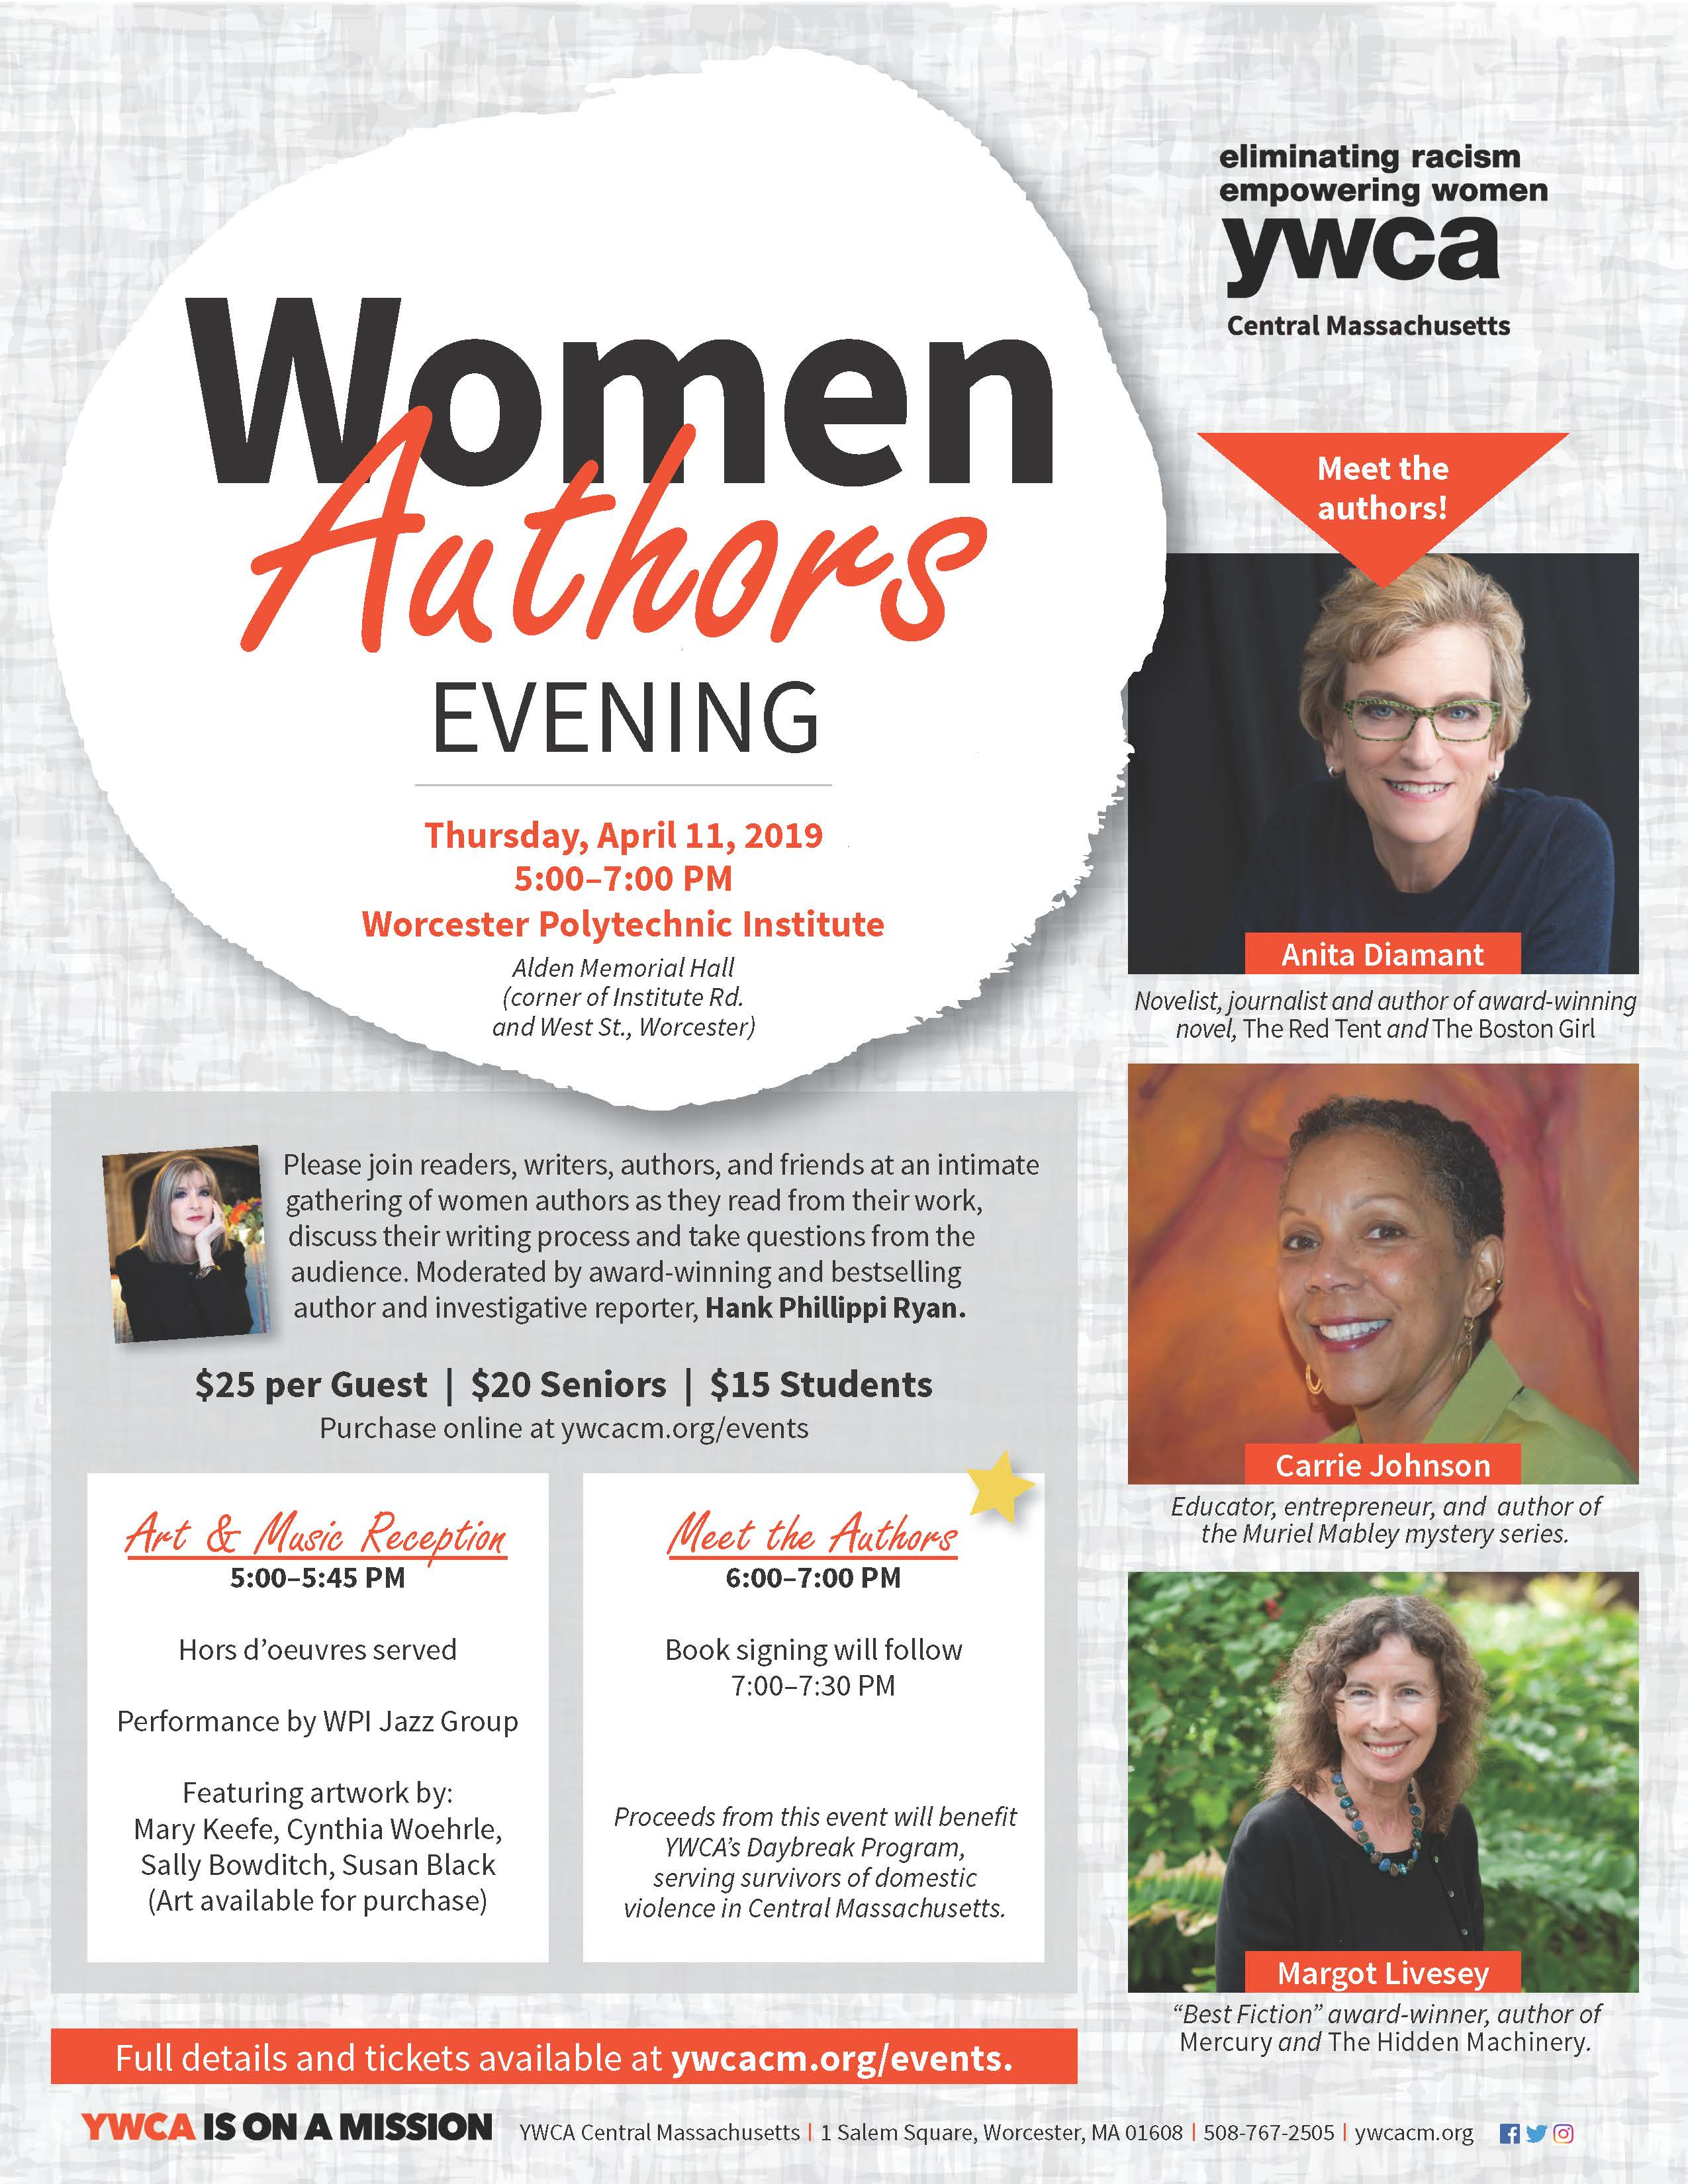 Moderated by award-winning and bestselling author and investigative reporter, Hank Phillippi Ryan